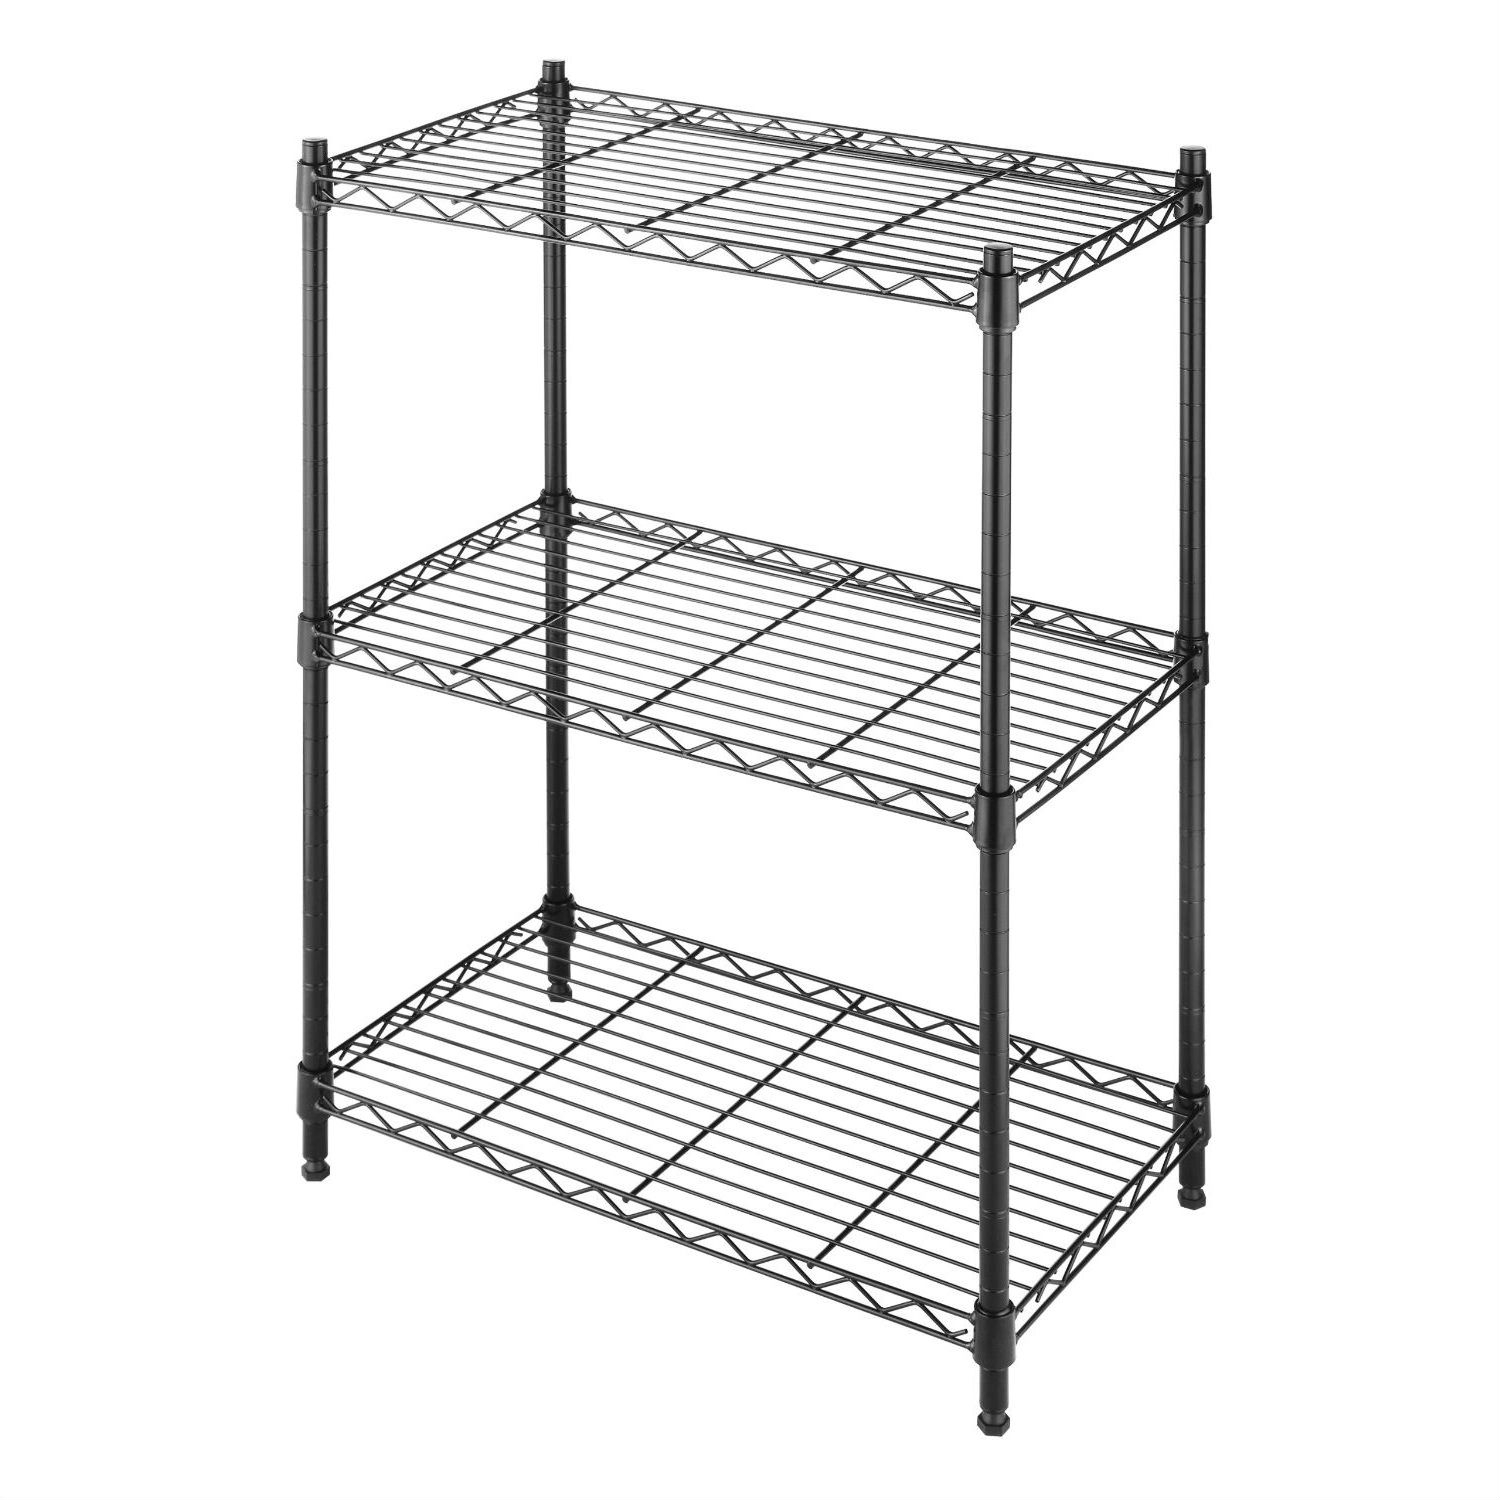 Small 3 Shelf Storage Rack Shelving Unit In Black Metal